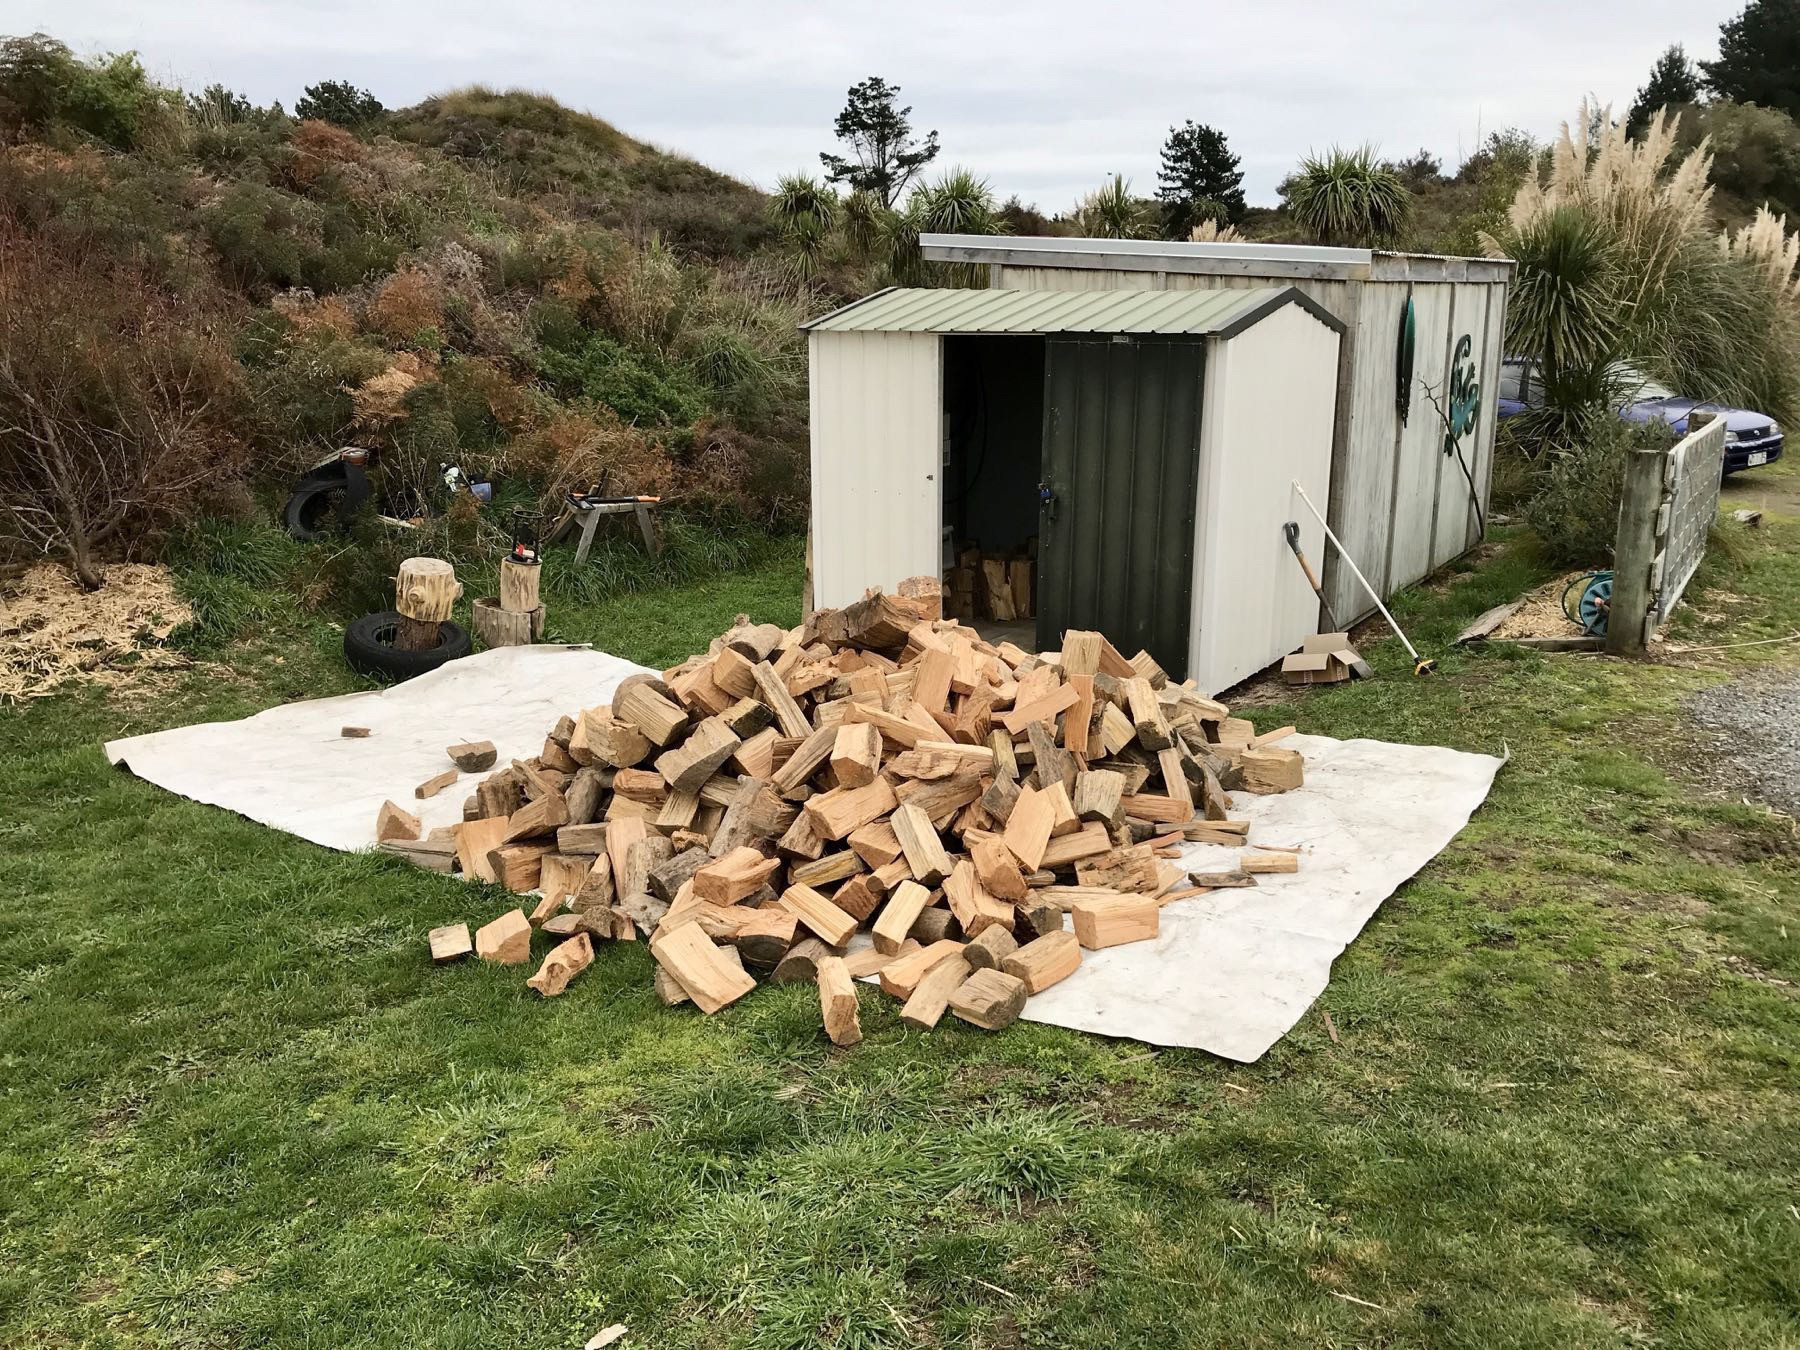 4 cubic metres of dry firewood outside the shed it needs to go into.